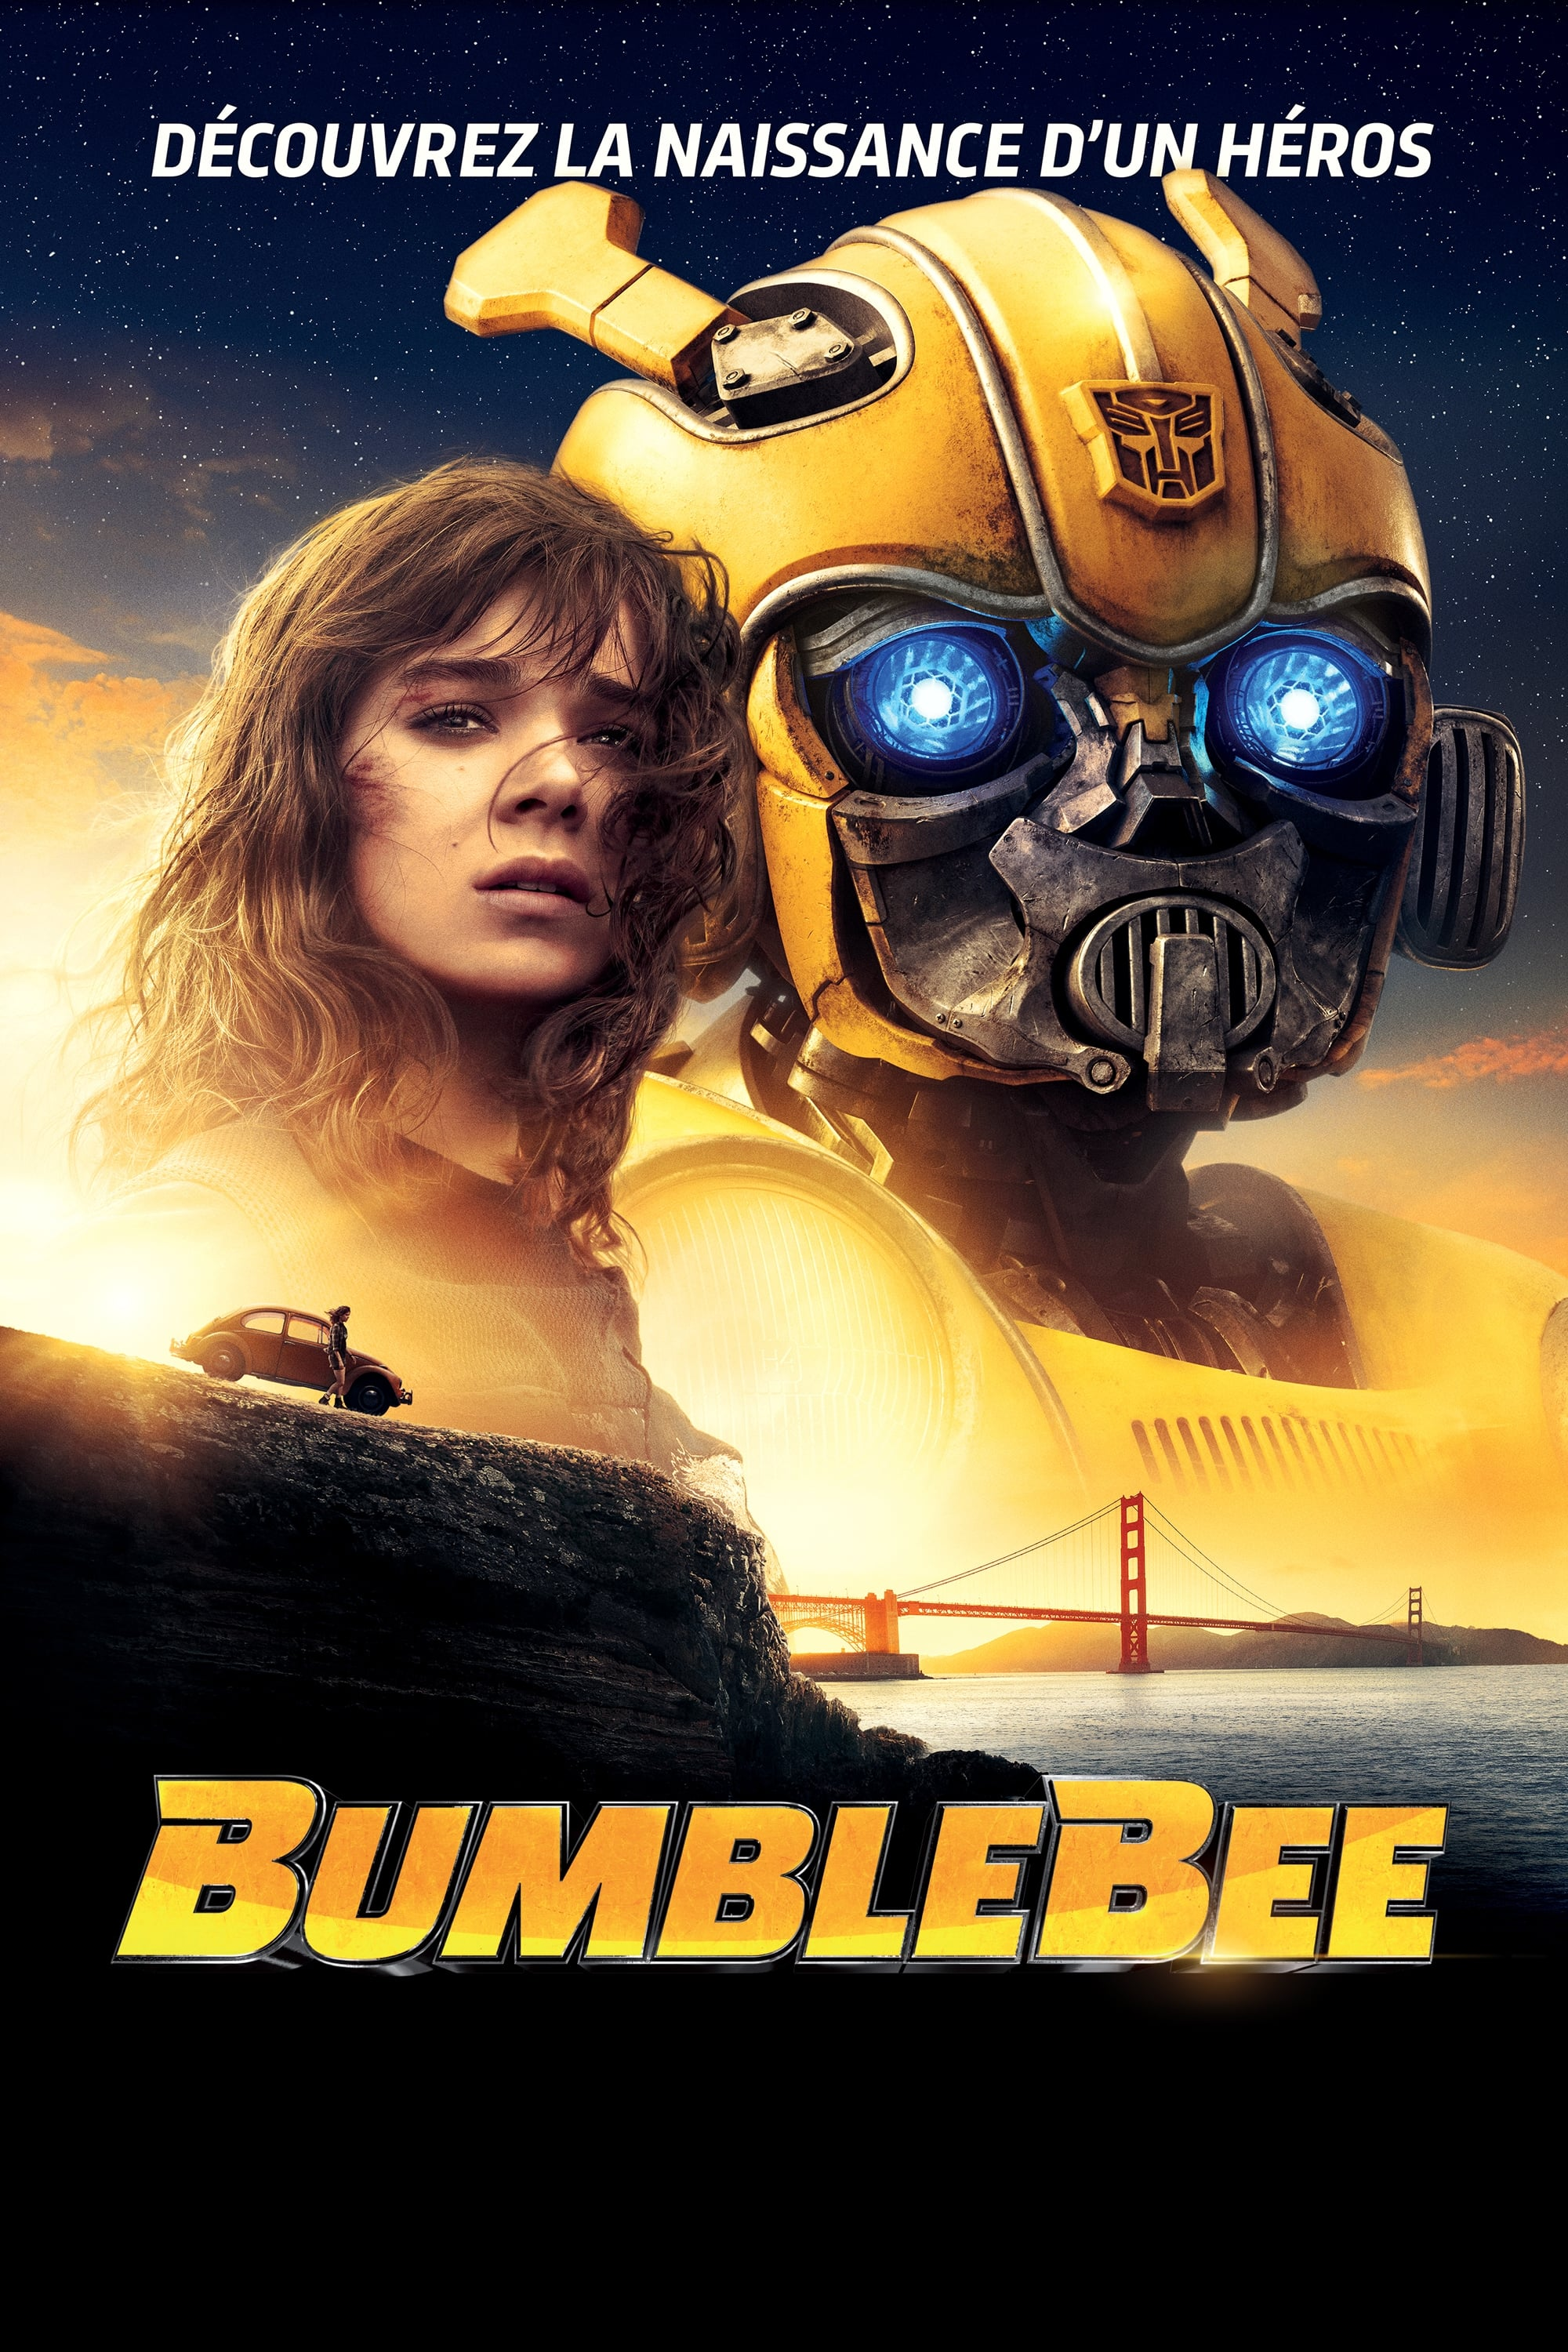 regarder film bumblebee 2018 streaming gratuit vf. Black Bedroom Furniture Sets. Home Design Ideas